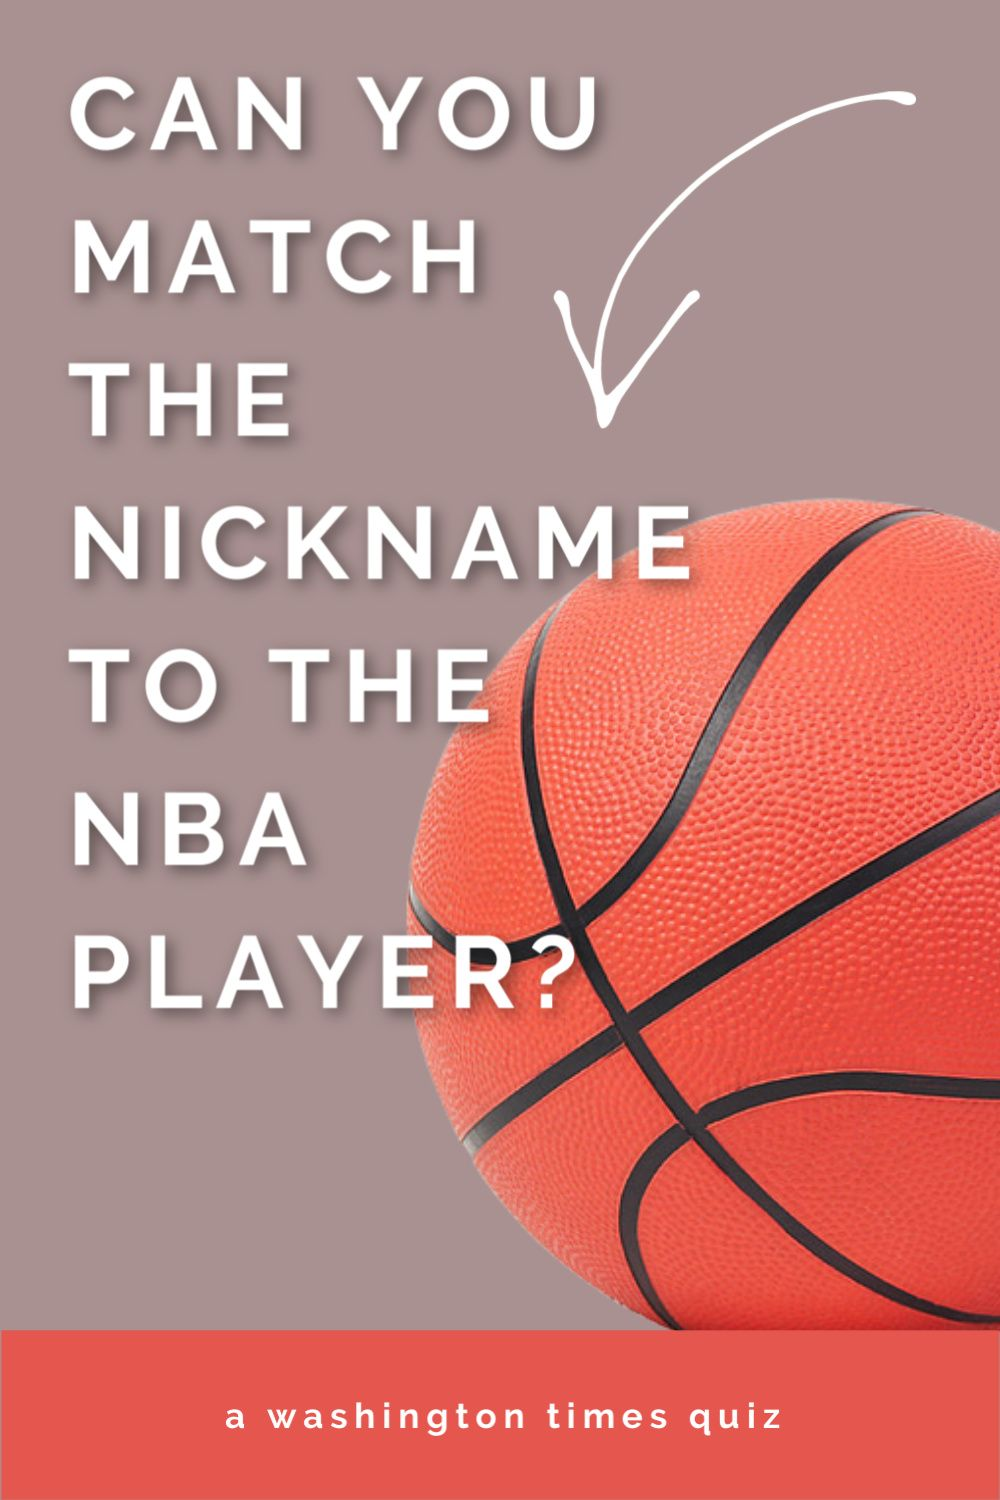 Can you match the nickname to the NBA player? Nba